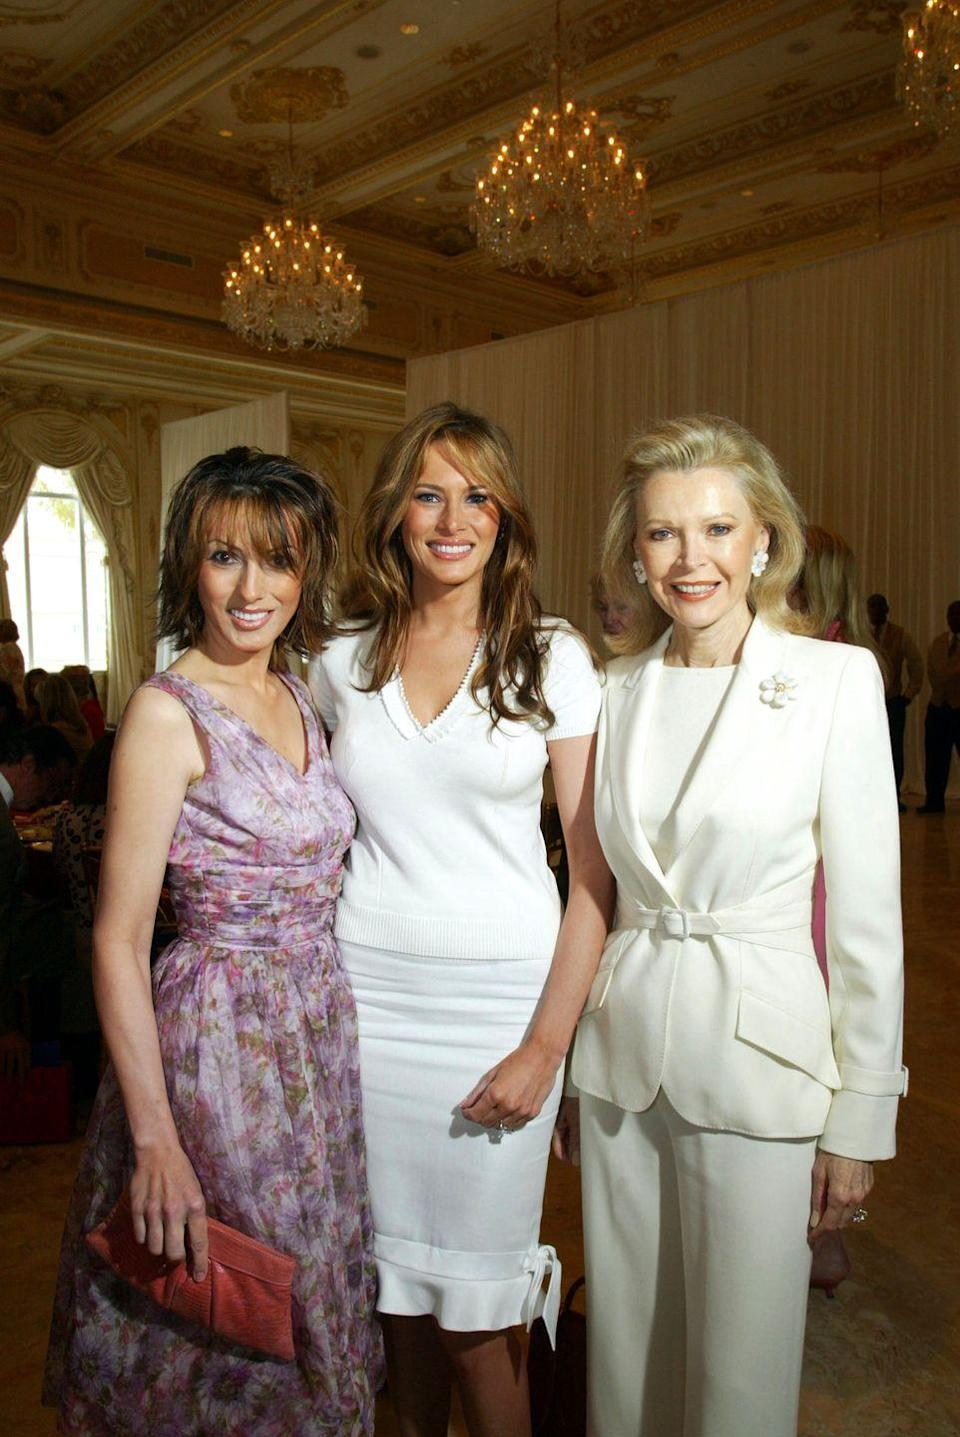 """<p><a href=""""https://www.townandcountrymag.com/society/politics/news/a9740/melania-trump-sister-ines-knauss/"""" rel=""""nofollow noopener"""" target=""""_blank"""" data-ylk=""""slk:The Knavses's first daughter, Ines"""" class=""""link rapid-noclick-resp"""">The Knavses's first daughter, Ines</a>, is about a year older than the first lady. The sisters are shown here at <a href=""""https://www.townandcountrymag.com/style/home-decor/a7144/mar-a-lago-history/"""" rel=""""nofollow noopener"""" target=""""_blank"""" data-ylk=""""slk:Mar-a-Lago"""" class=""""link rapid-noclick-resp"""">Mar-a-Lago</a> with Palm Beach philanthropist Audrey Gruss. They changed their last name from Knavs to its German form, Knauss.</p>"""